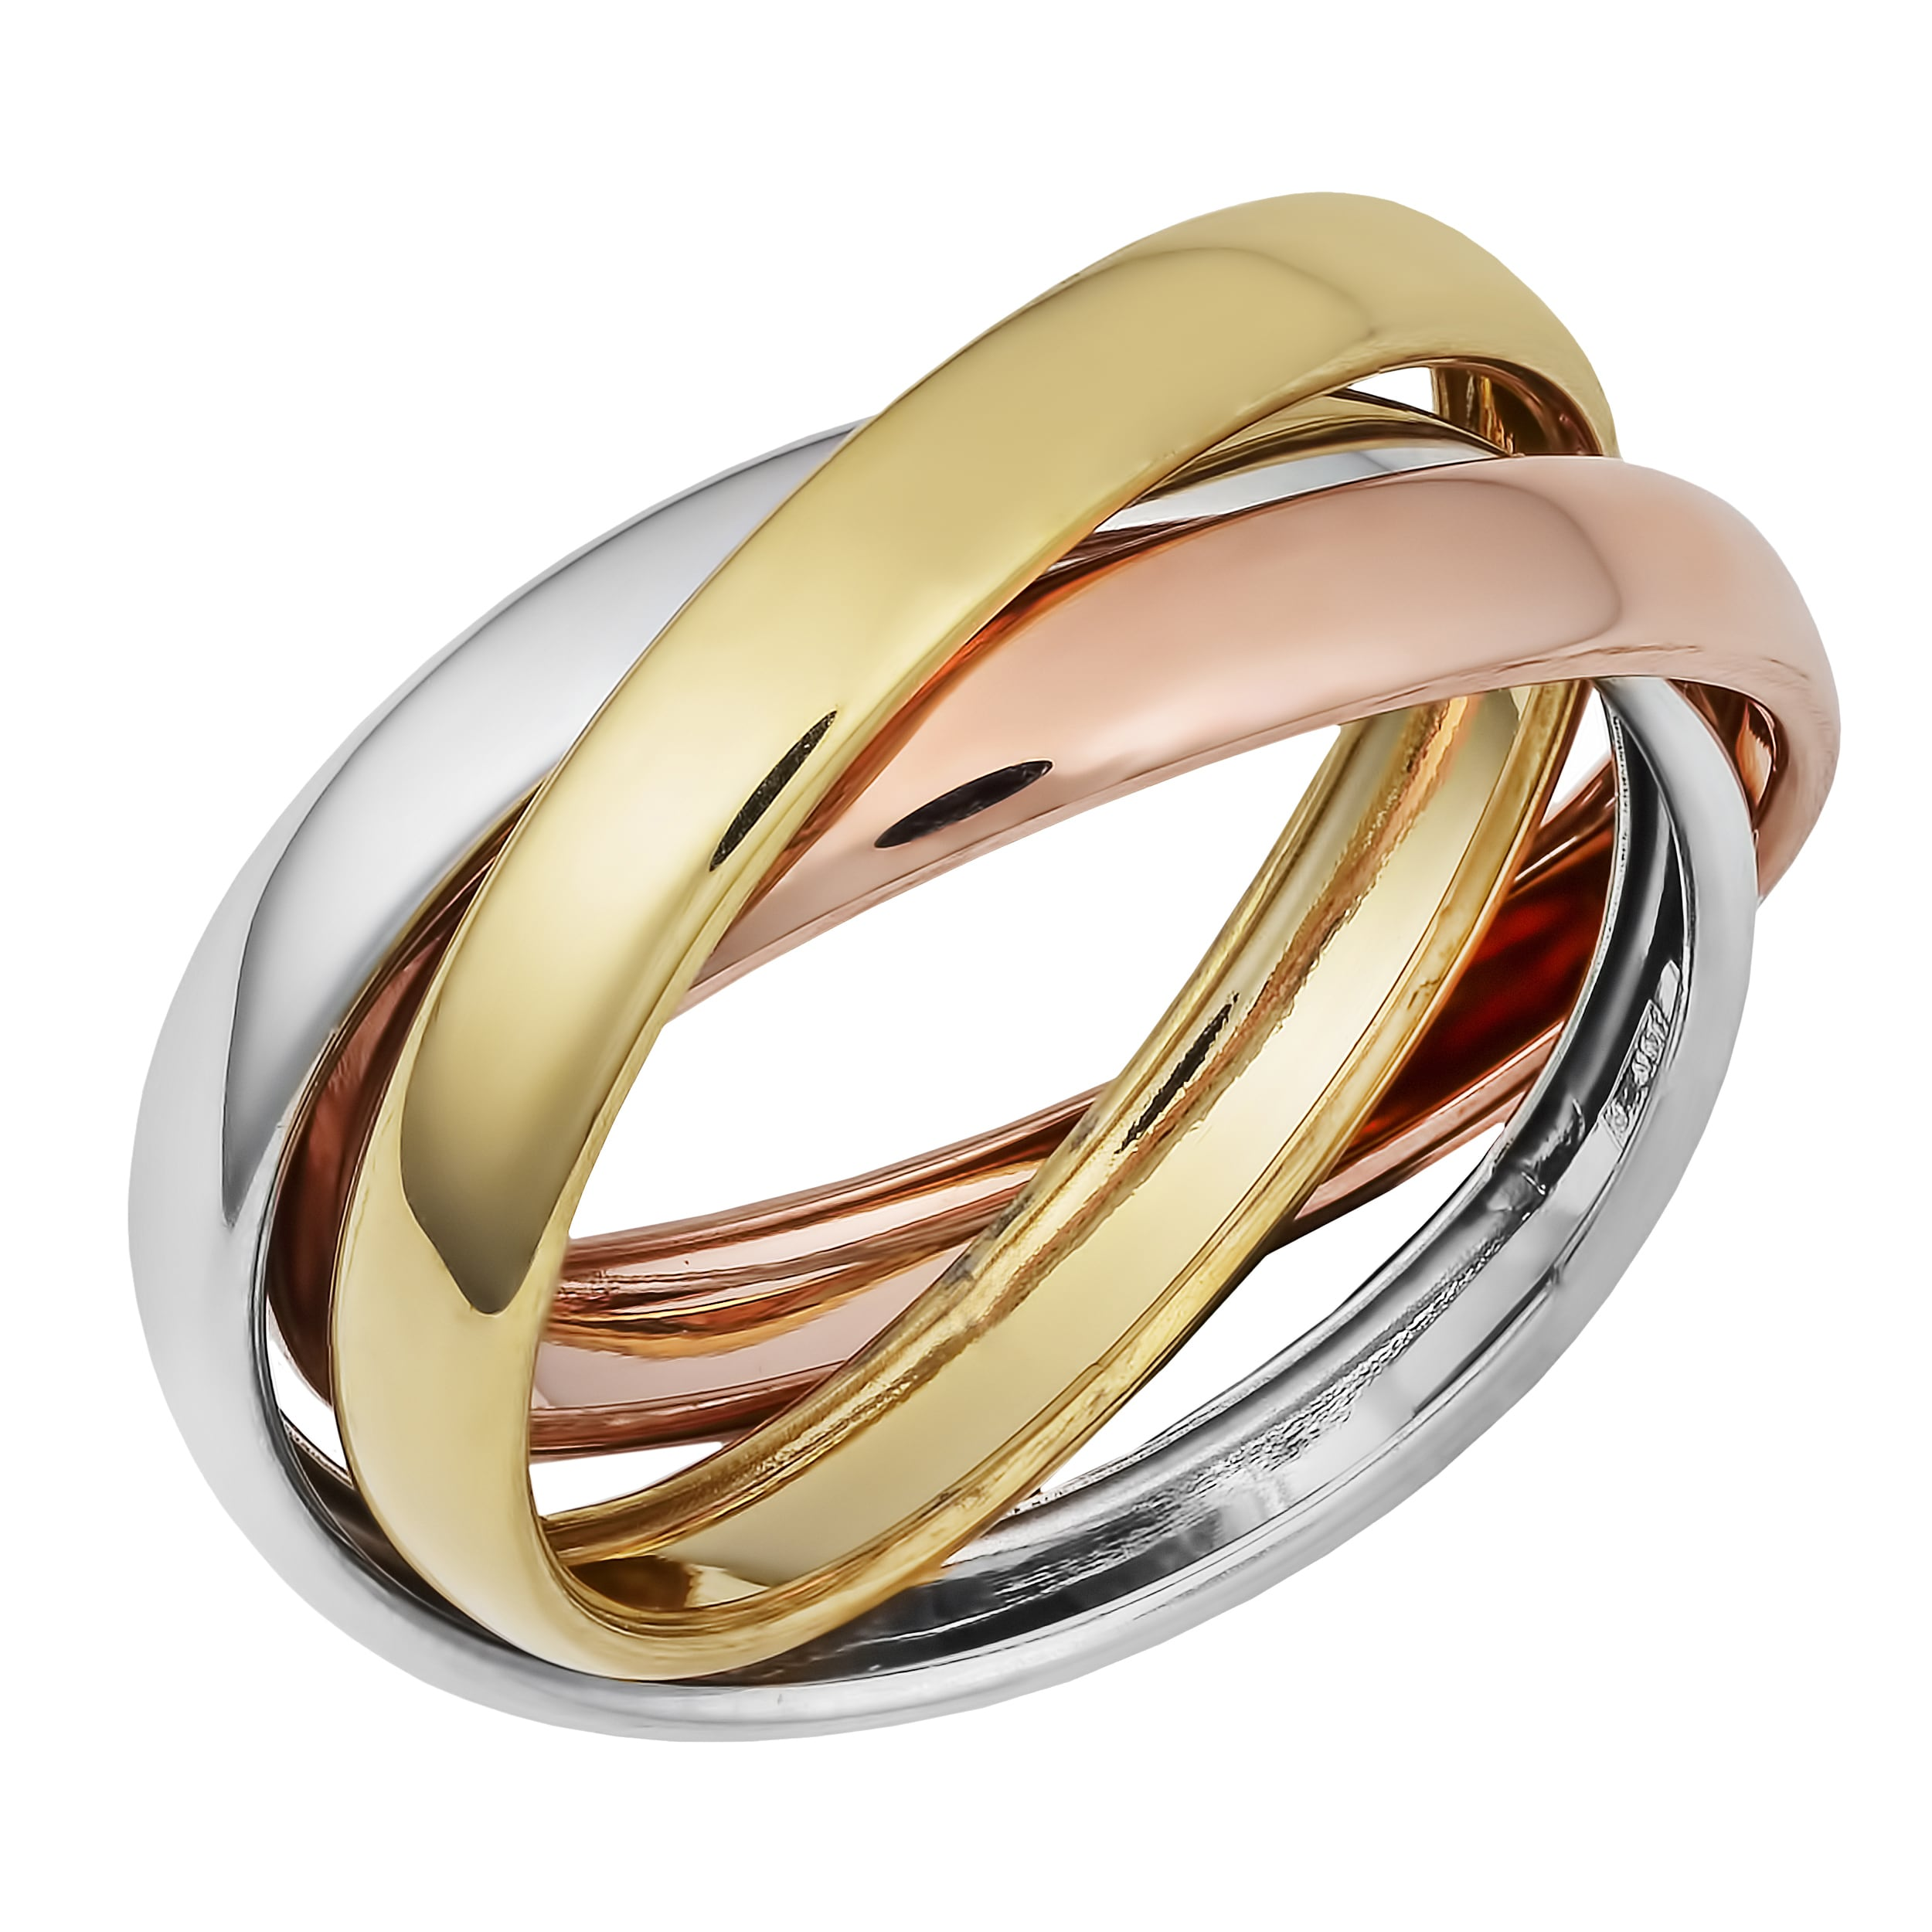 mens hills wedding klugex tri gold direct rings ring bands colored black blackhillsgold